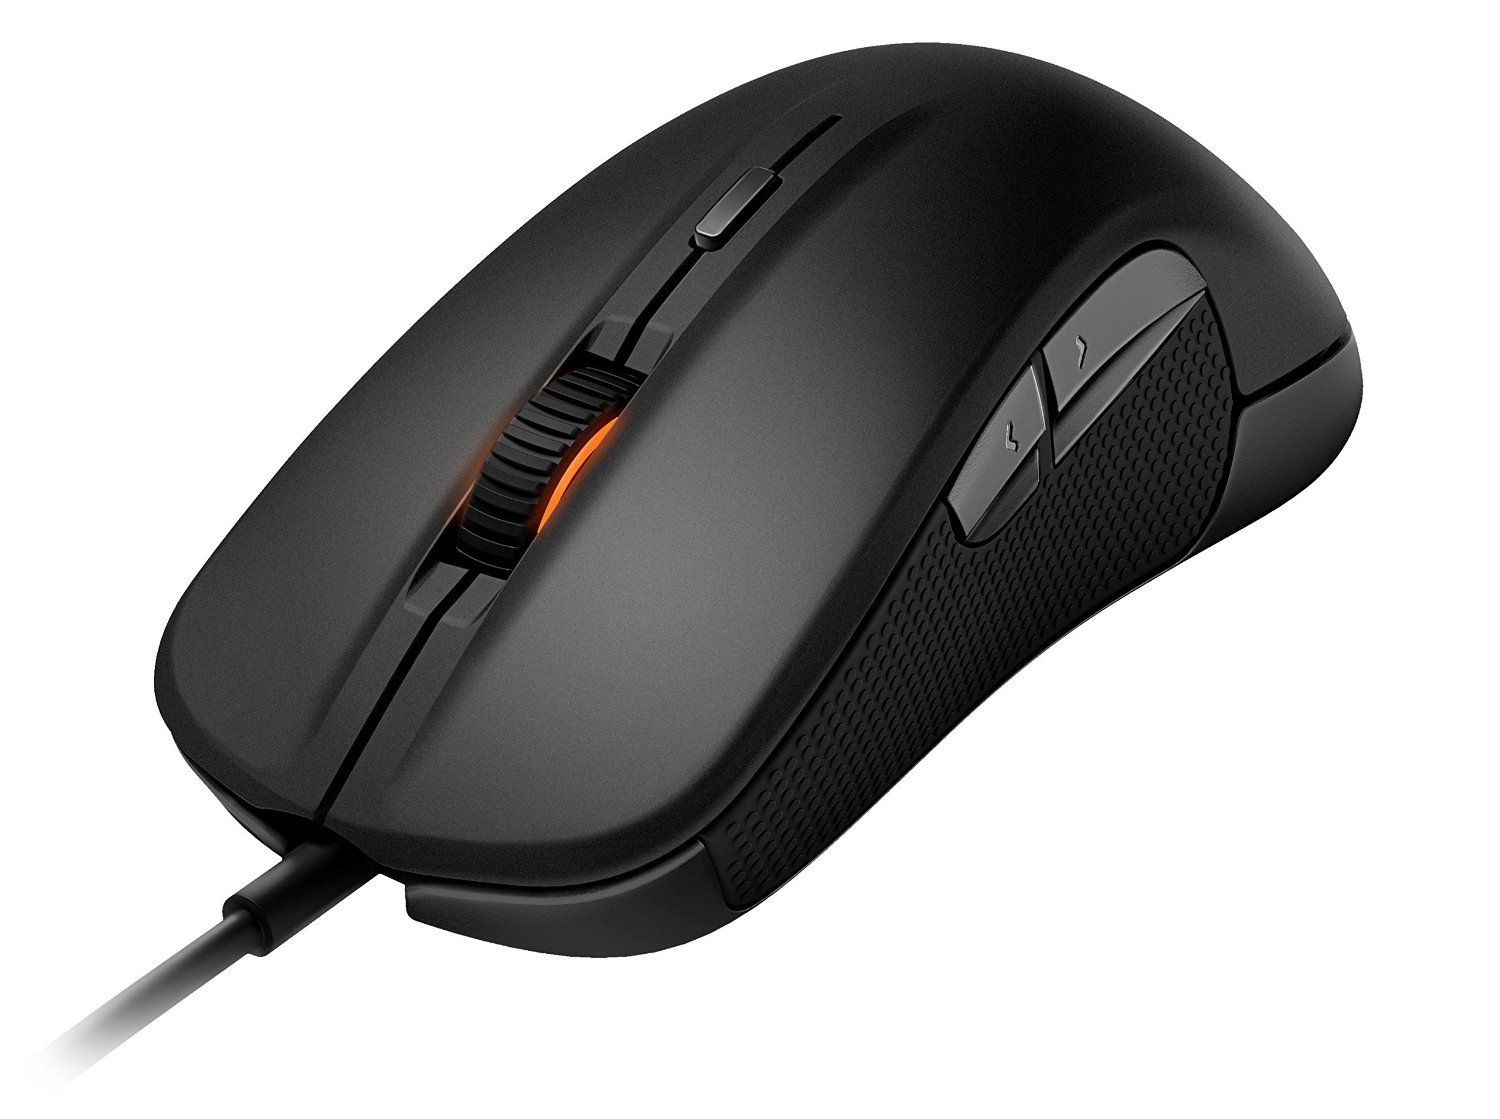 SteelSeries Rival Test optische gaming Maus